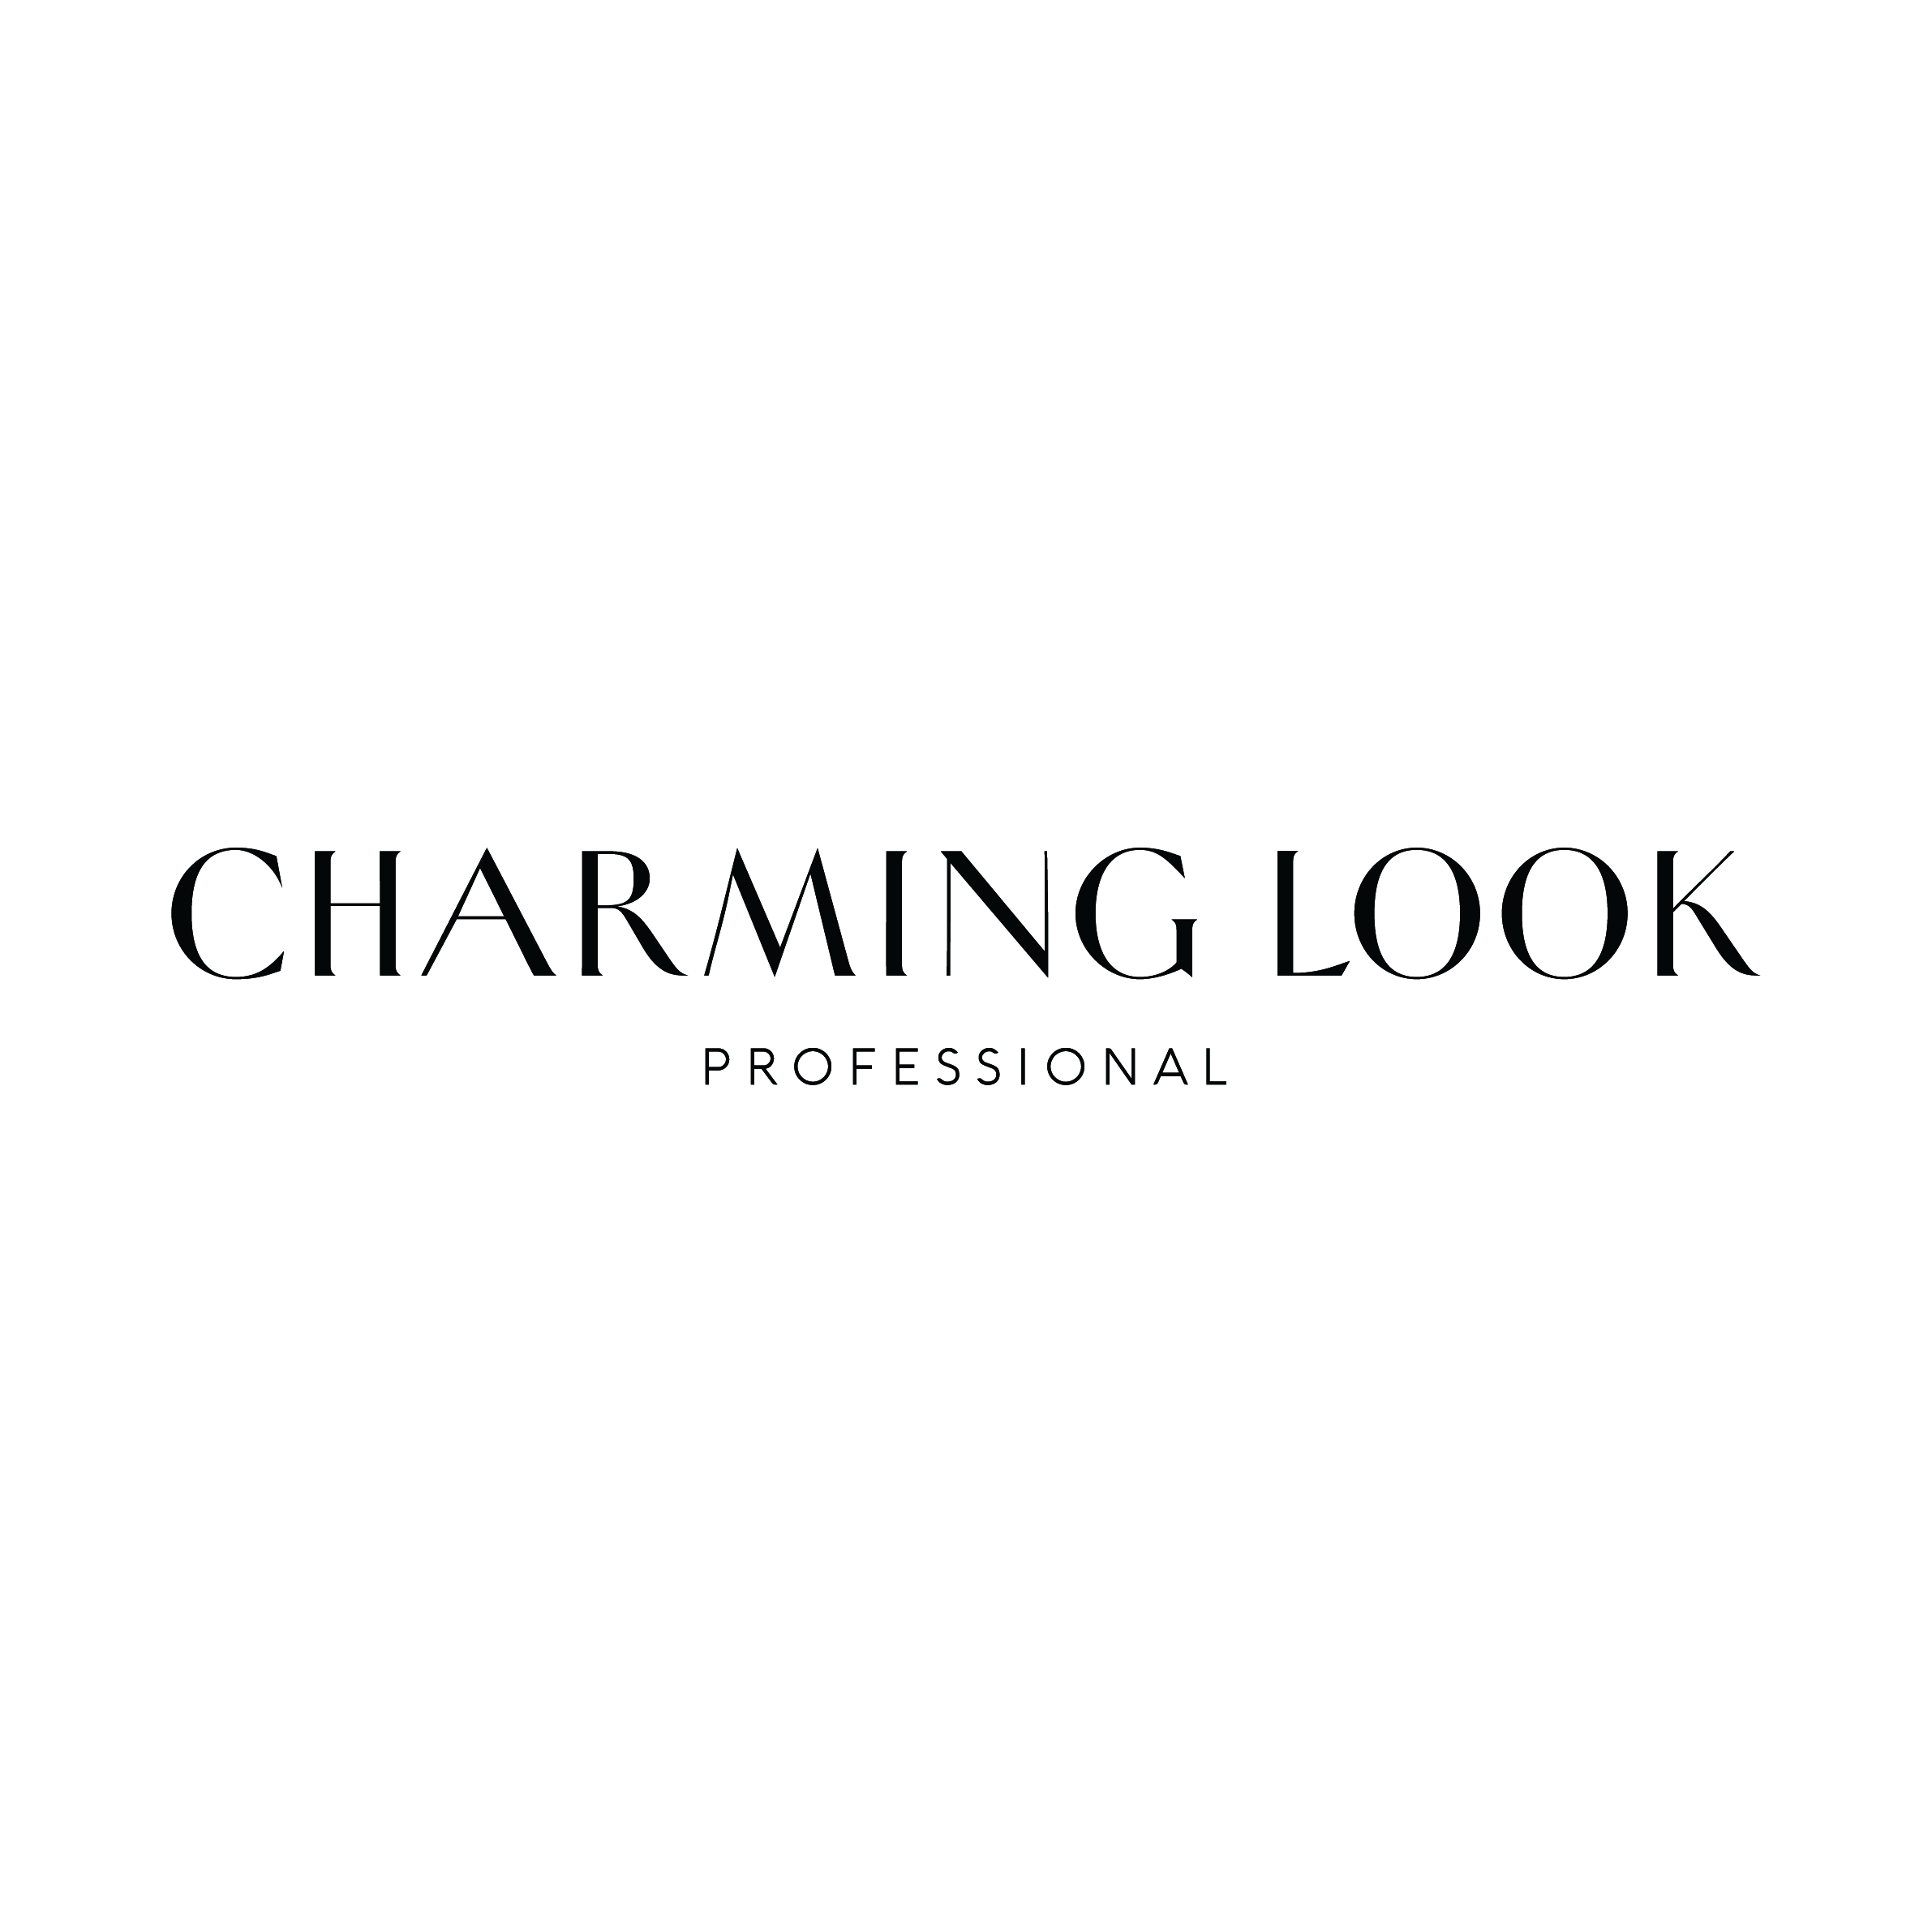 charminglook